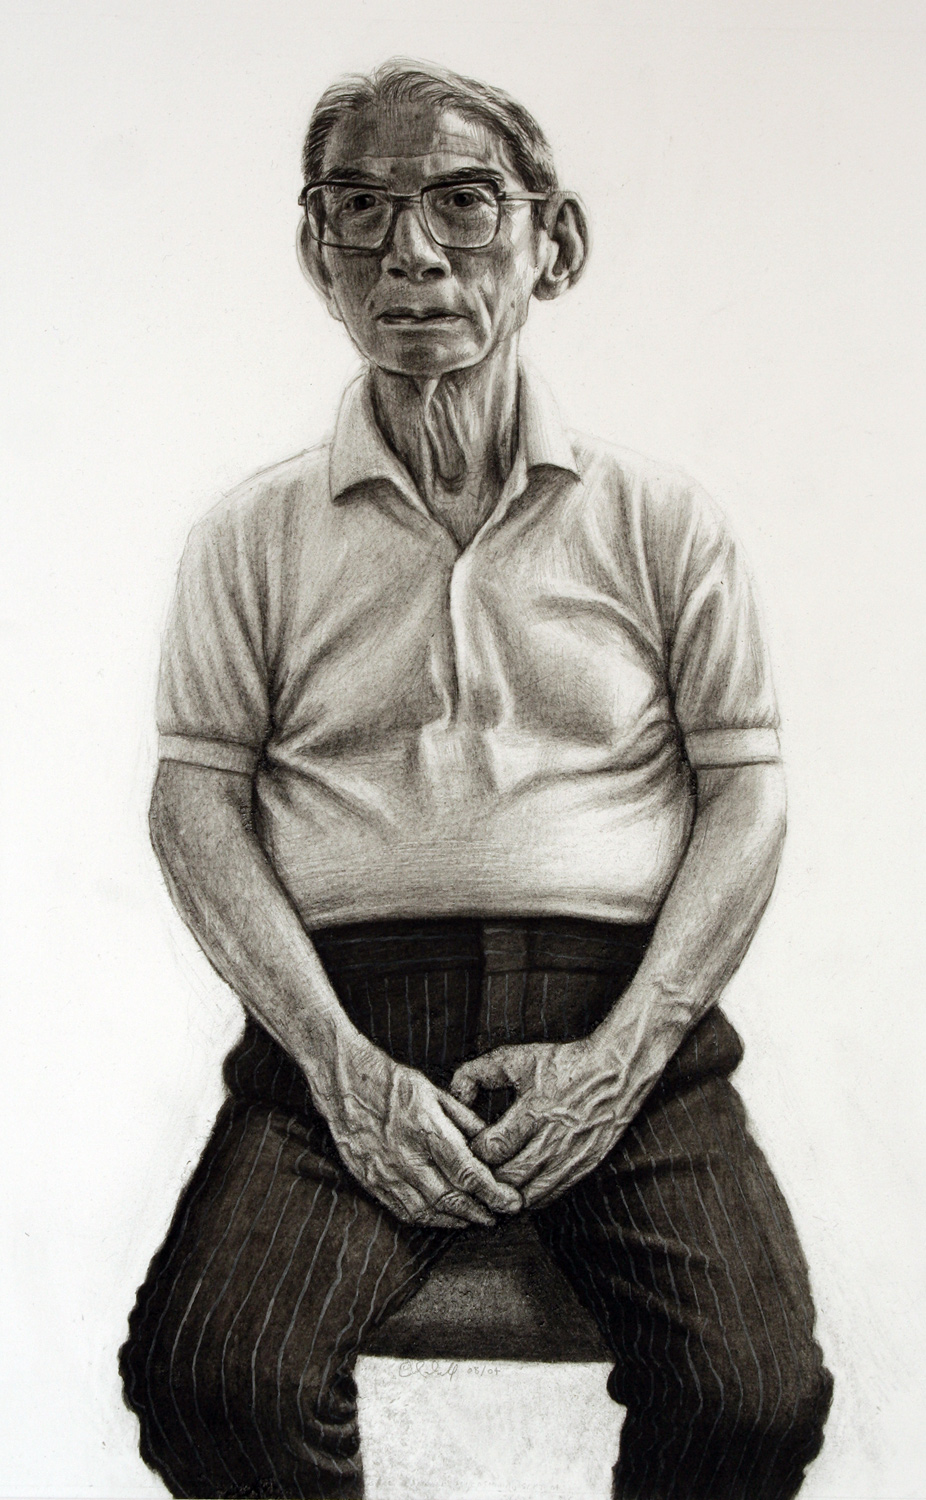 Survivor of the atomic bomb, Hiroshima (Mr.Toshinobu Sasaki)